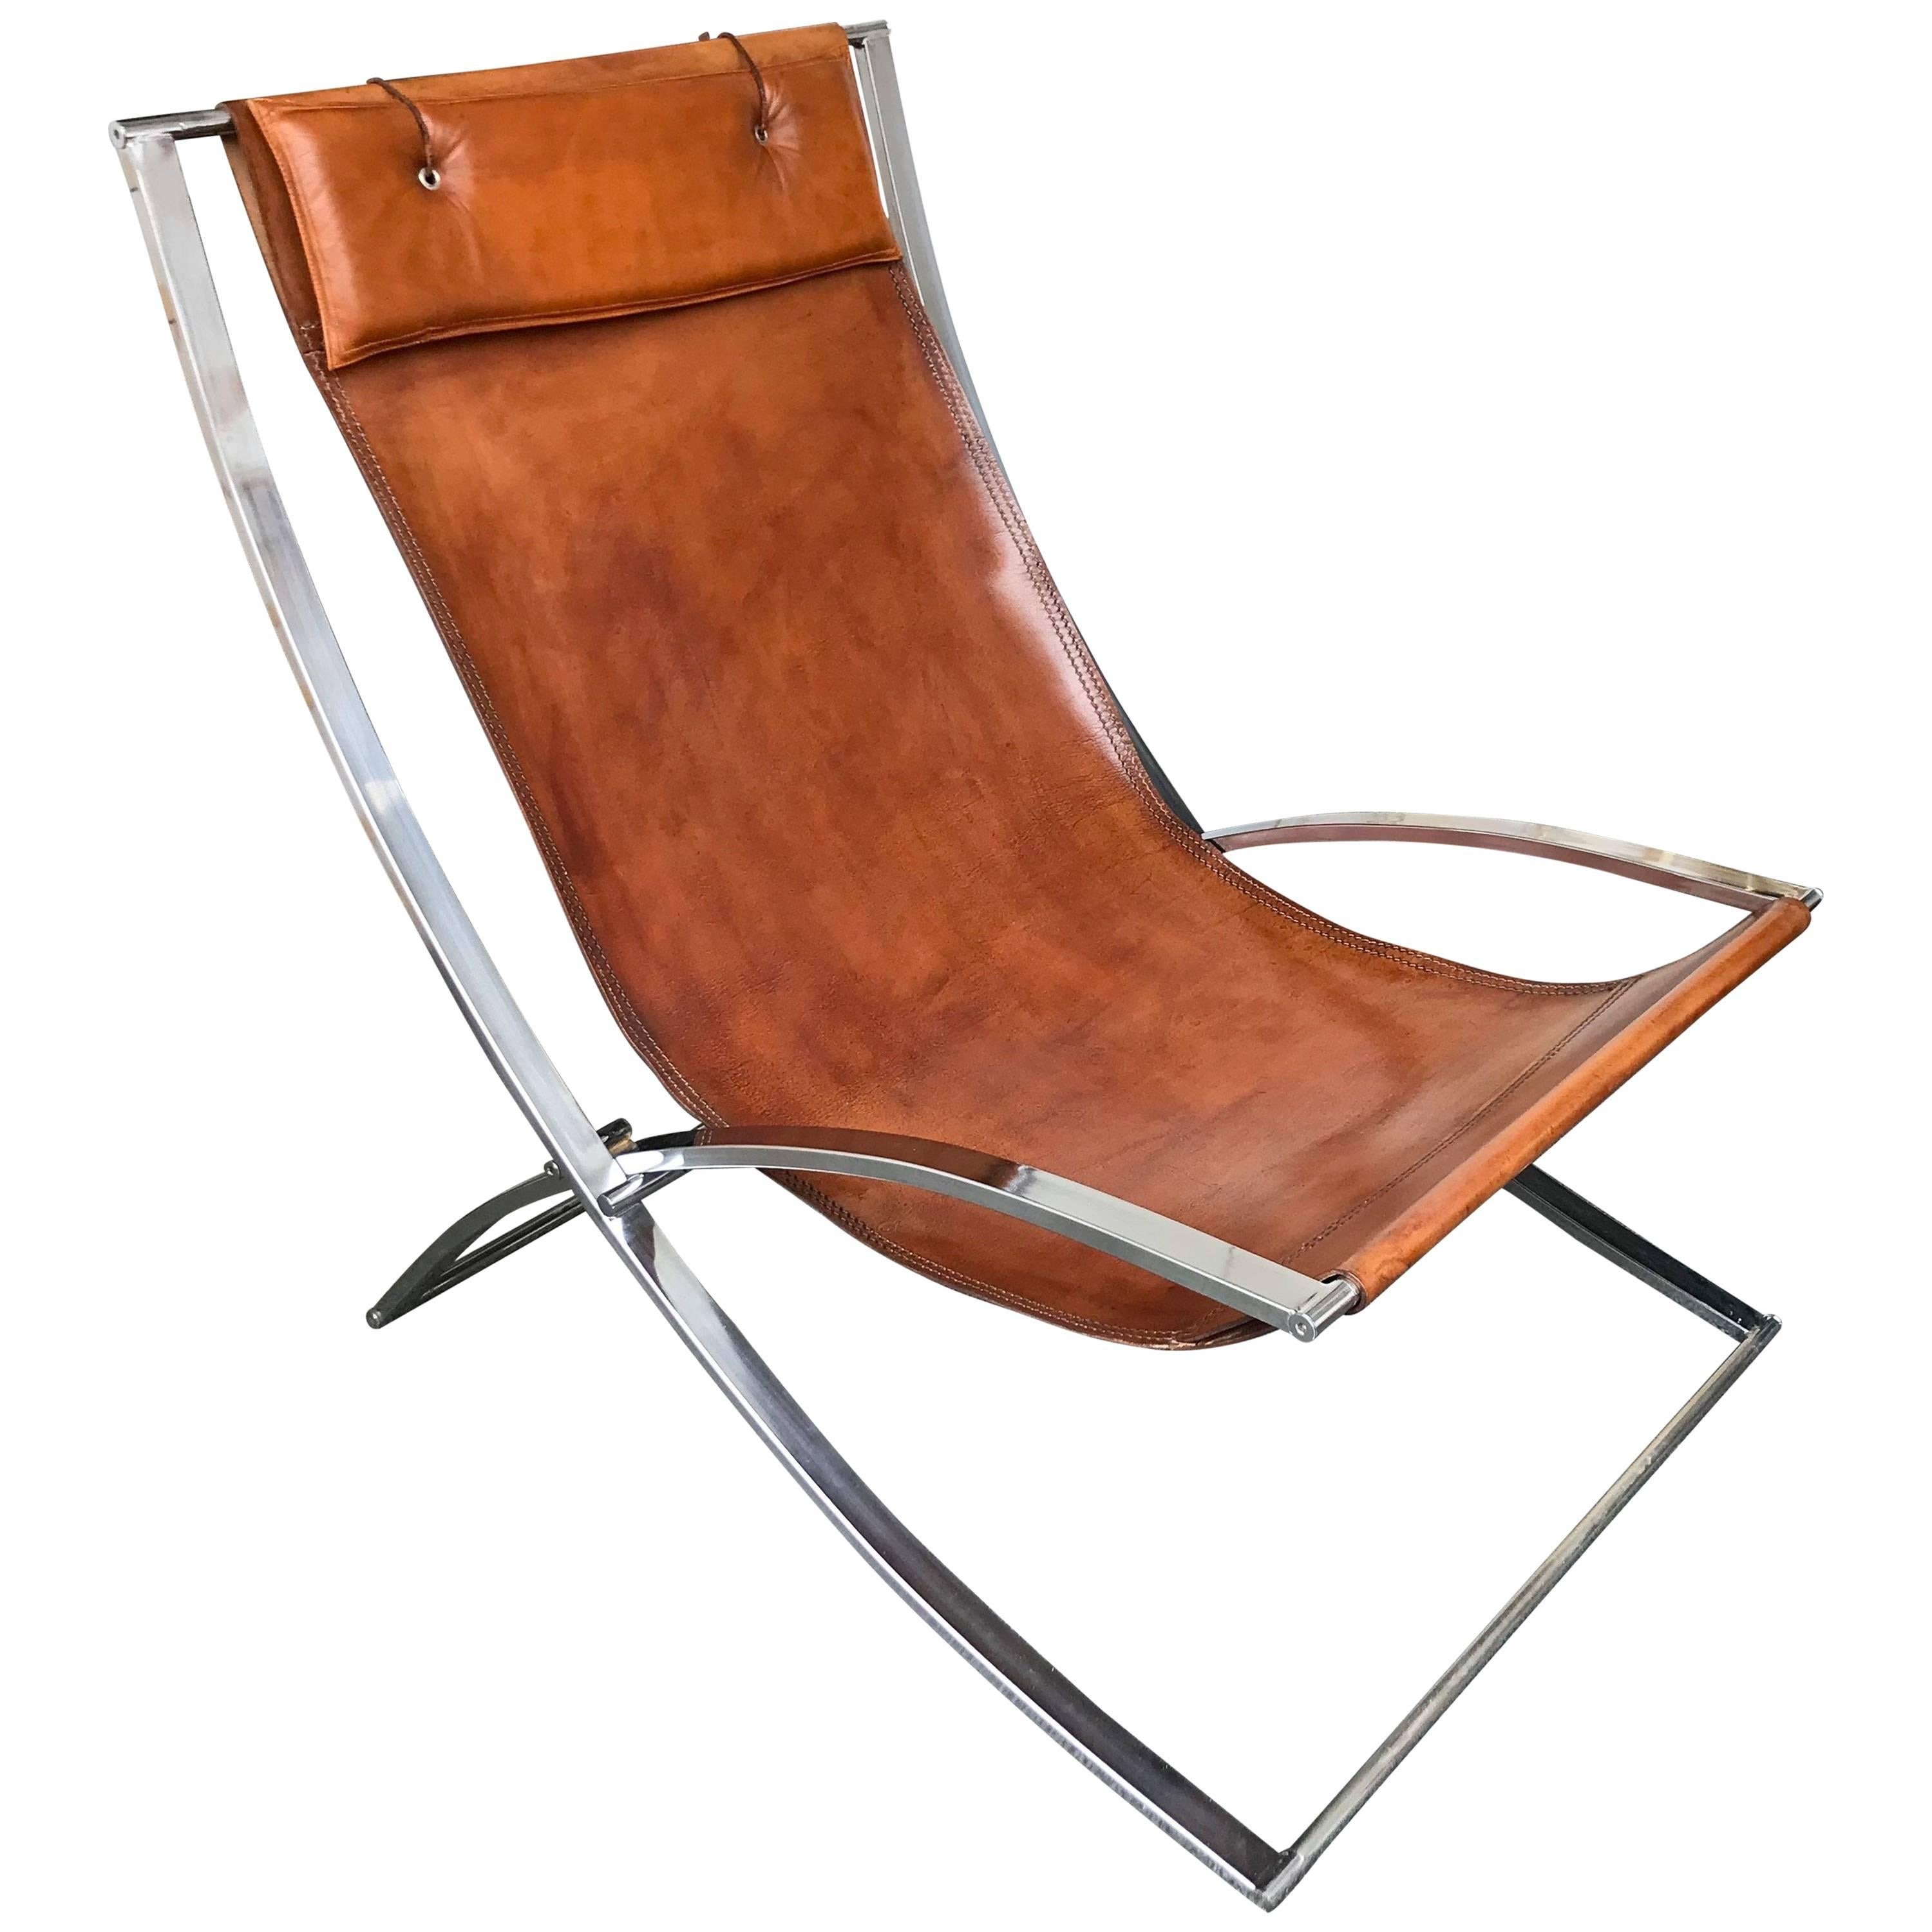 Famous Chair Lounge Chair Leather And Chrome By Marcello Cuneo Italy 1970s